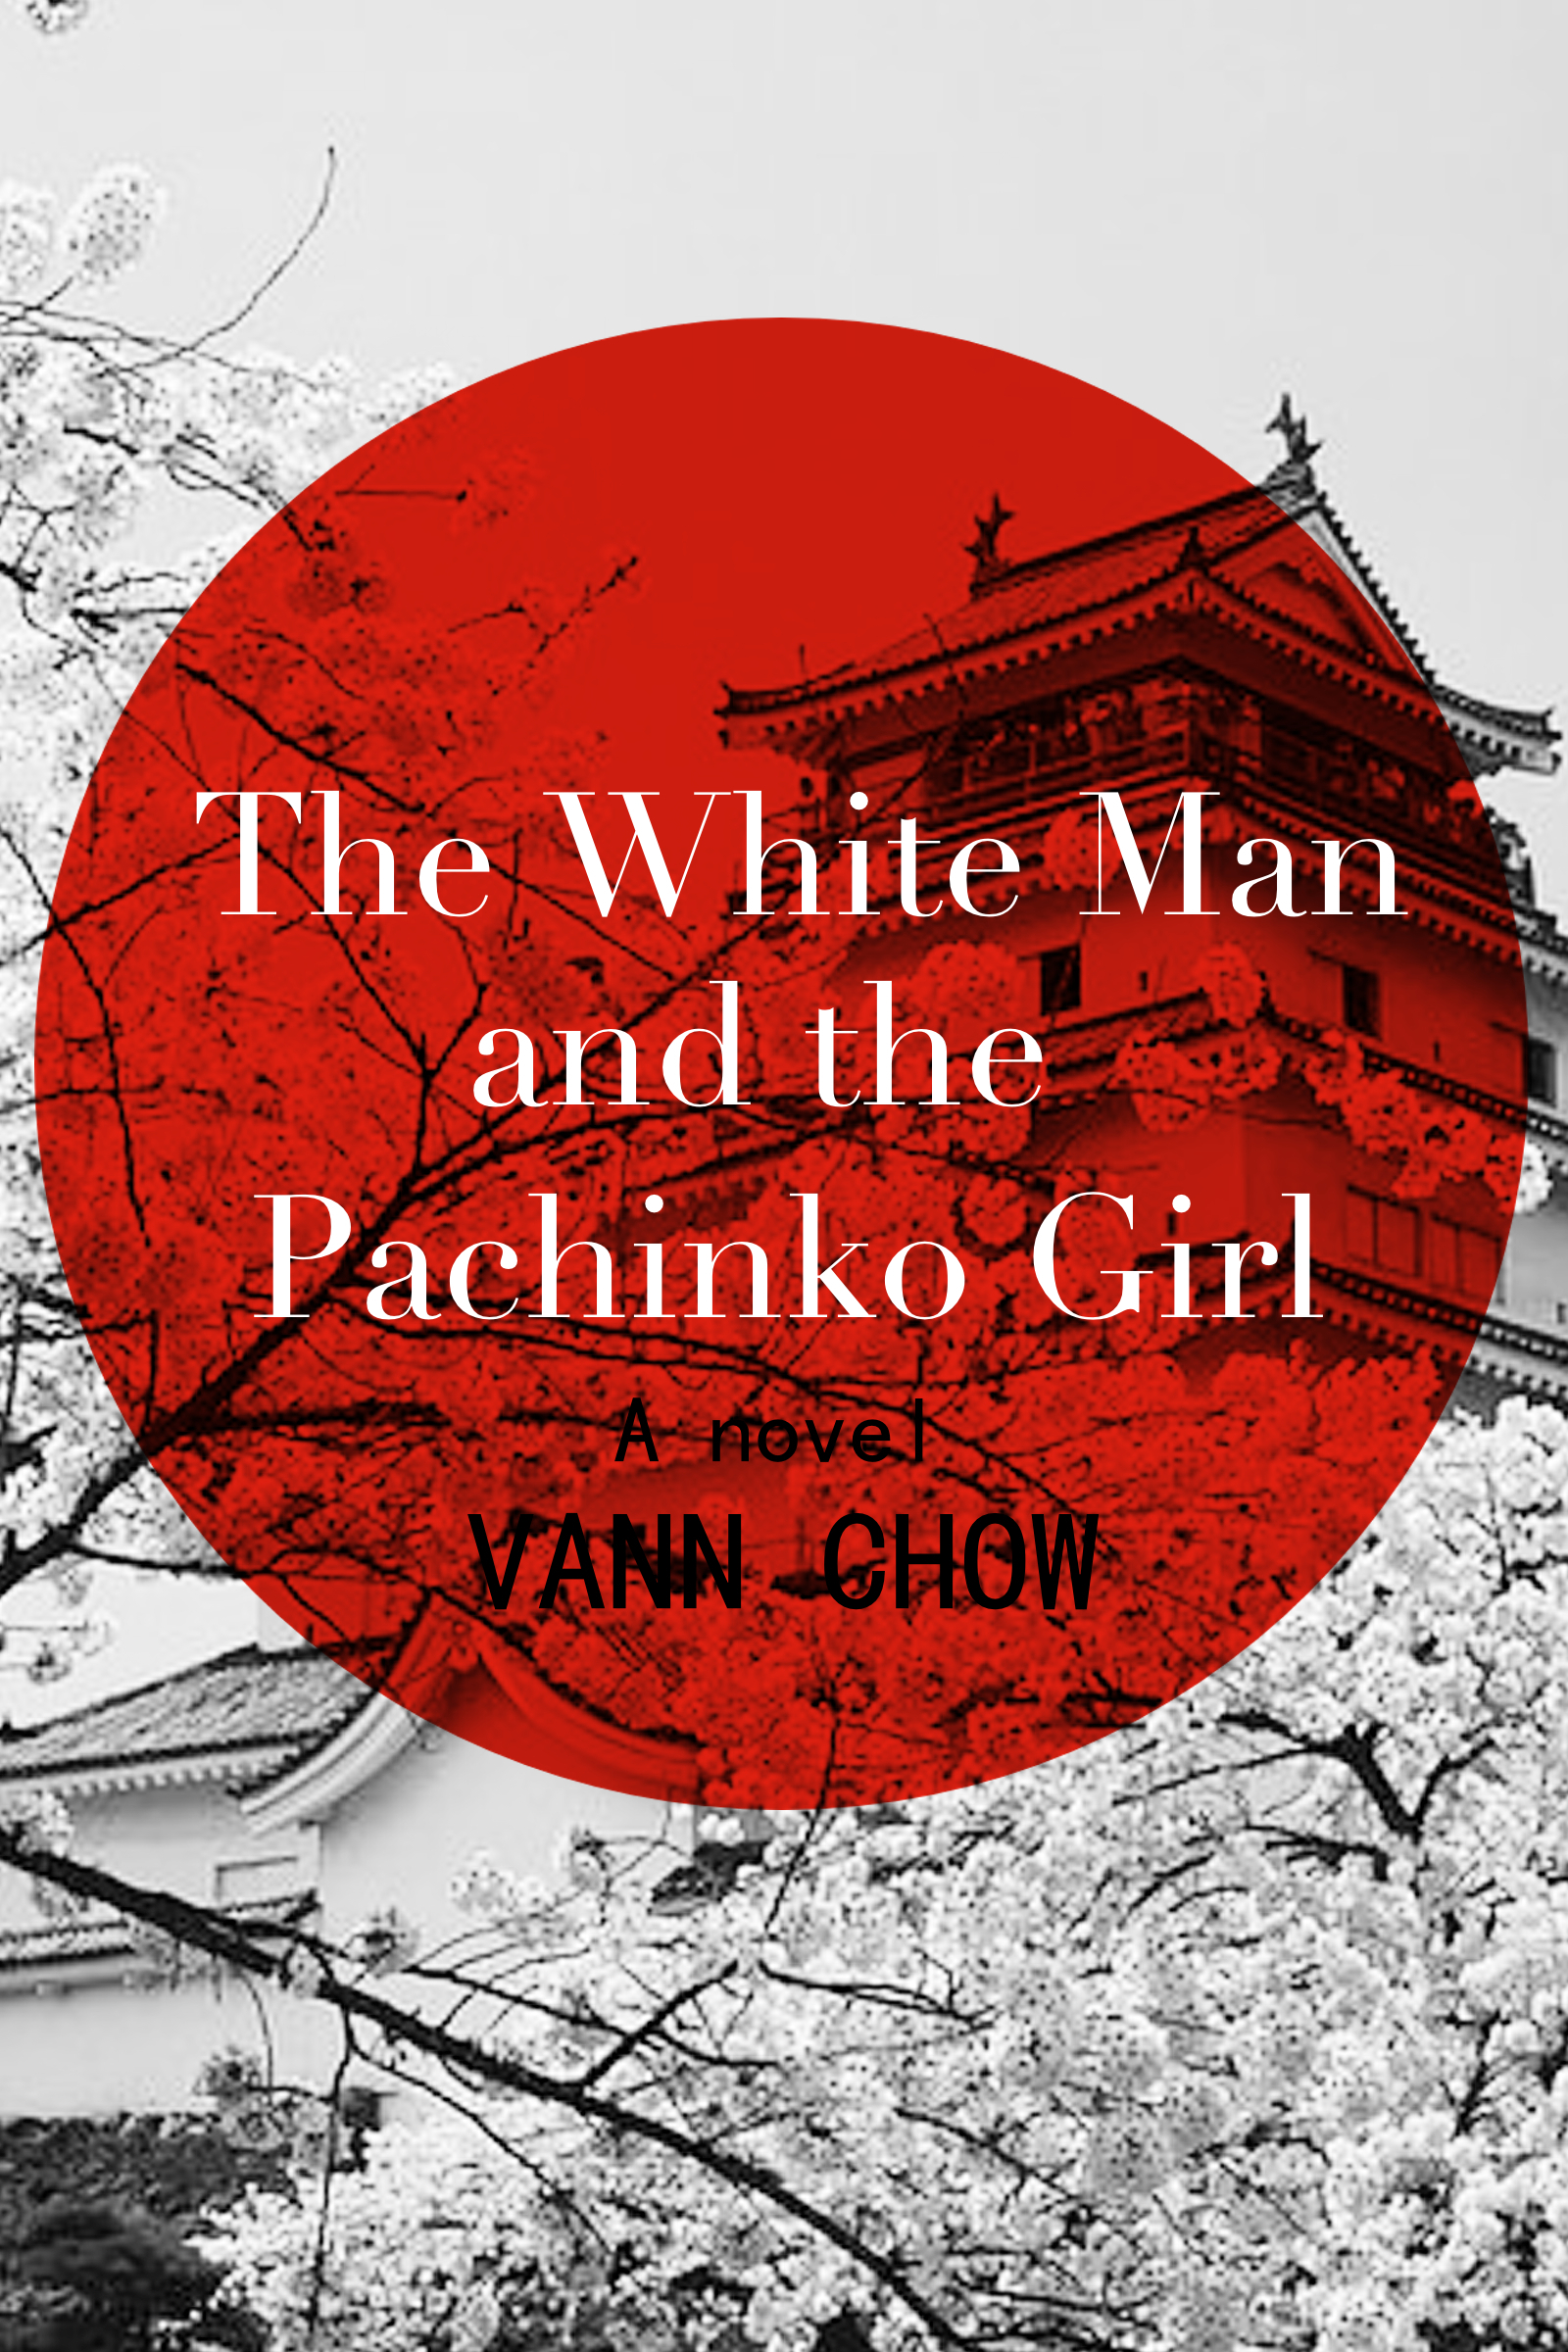 The White Man and the Pachinko Girl